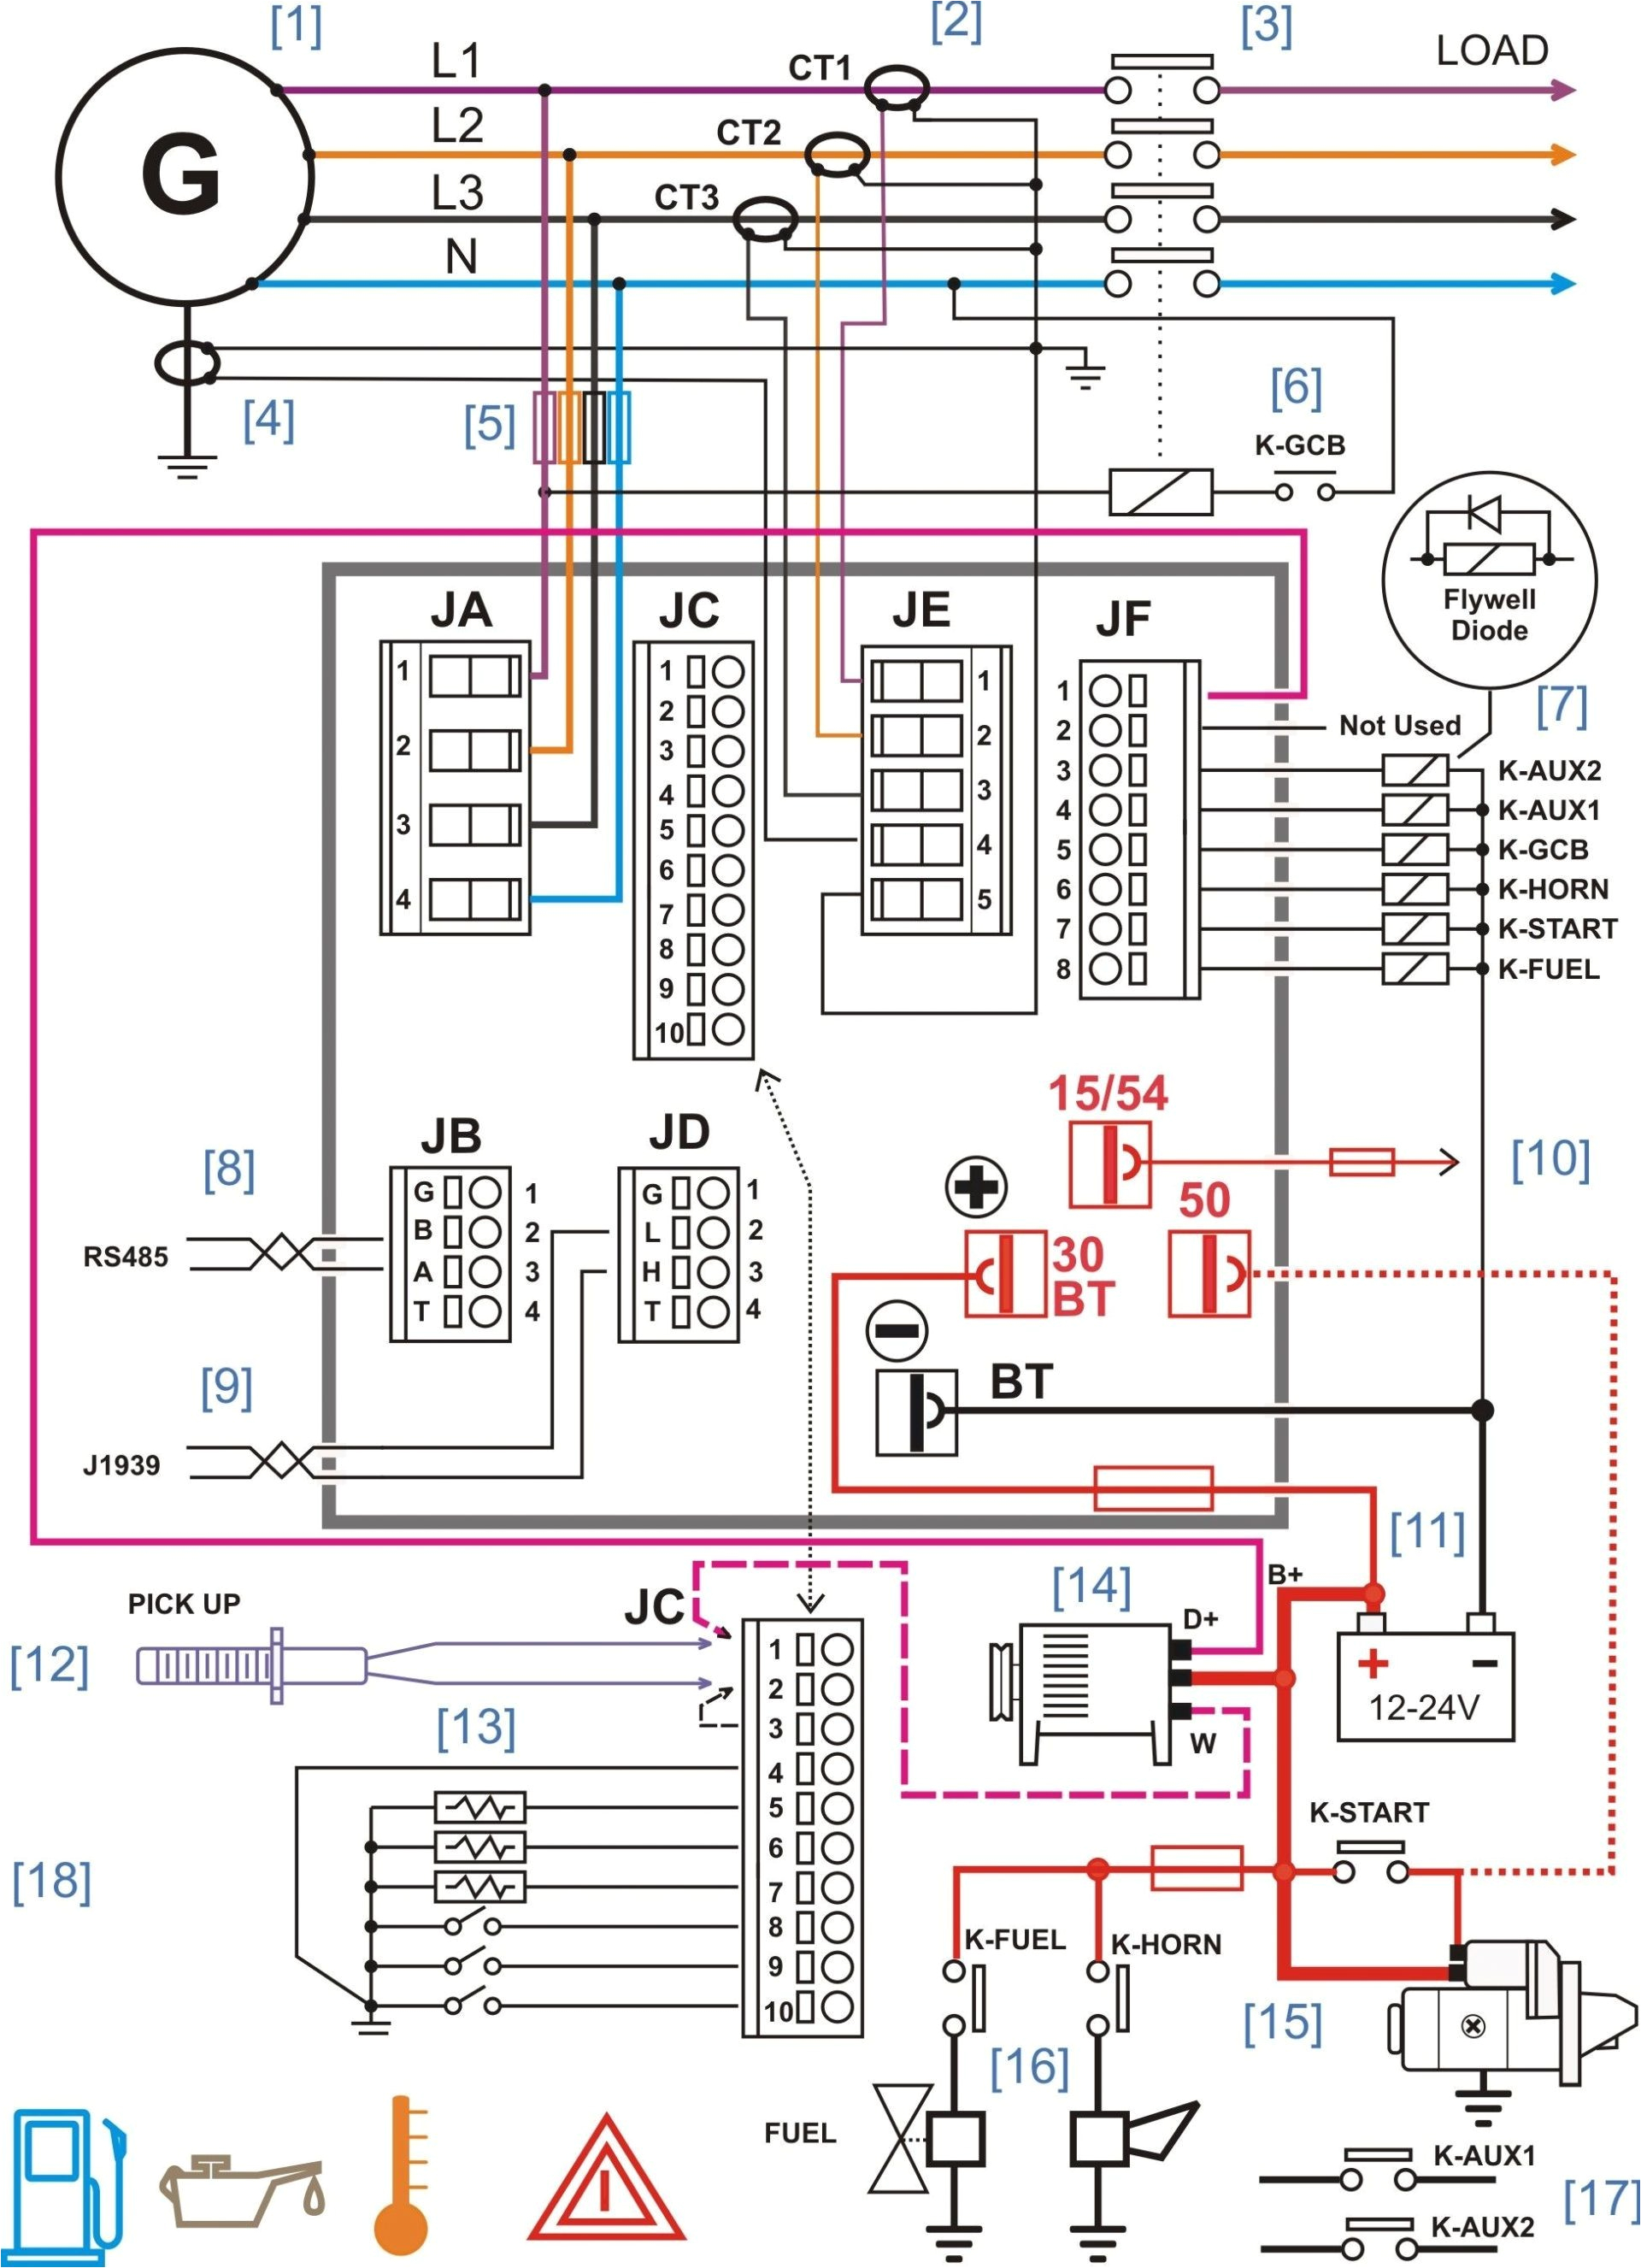 rv distribution panel wiring diagram a board valid for new electrical 14n with marine generator